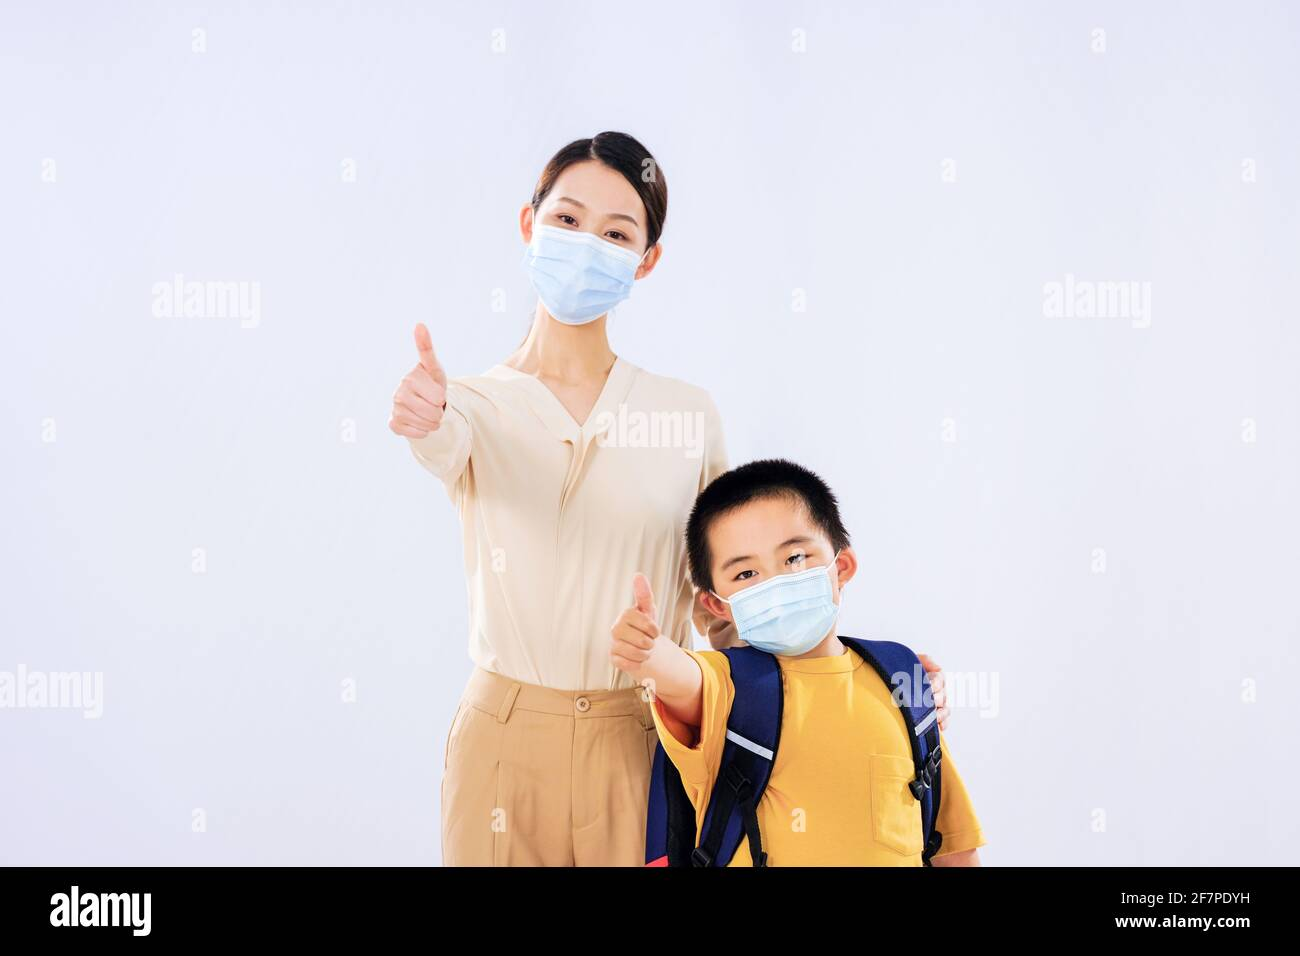 Mom and the little boy with the mask put up their thumbs smiling Stock Photo